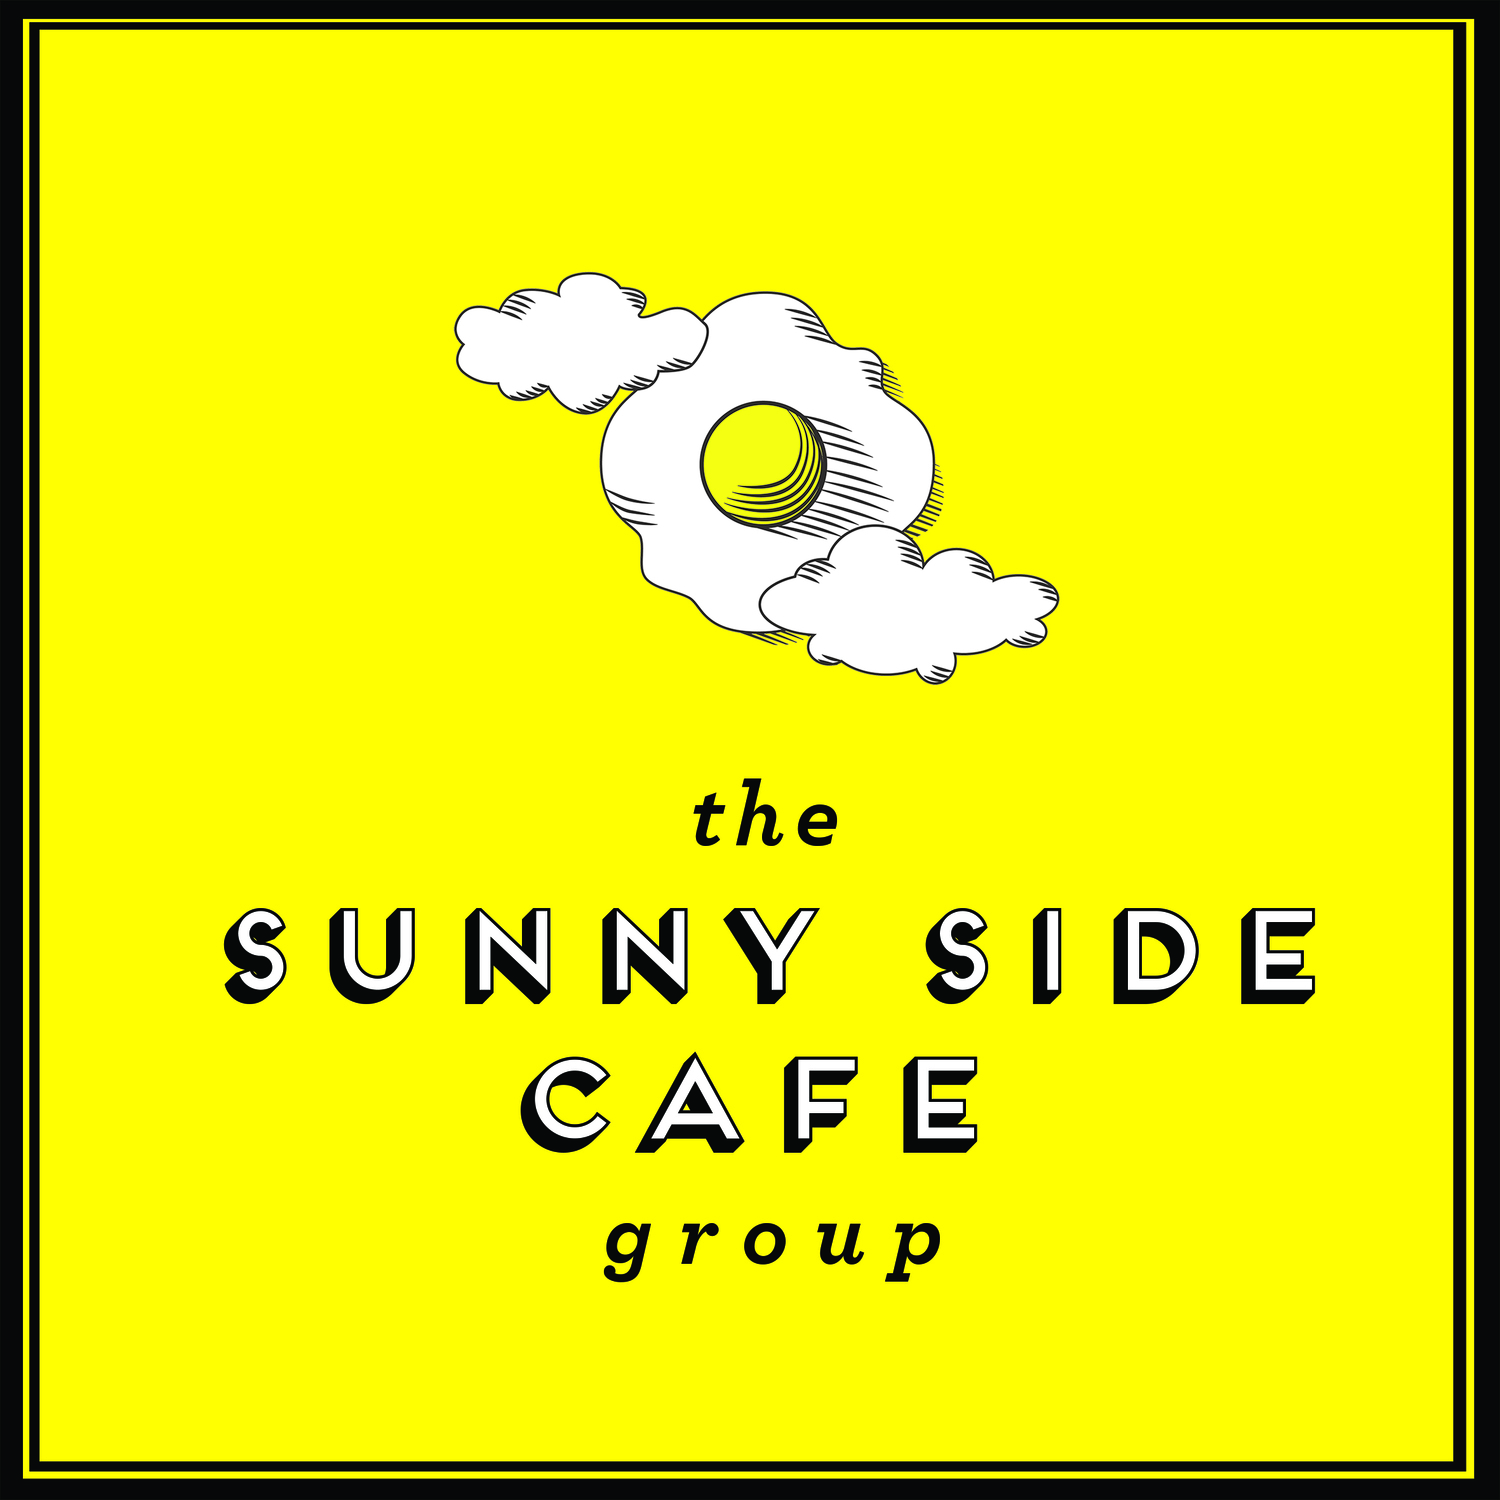 The SUNNY SIDE CAFE GROUP